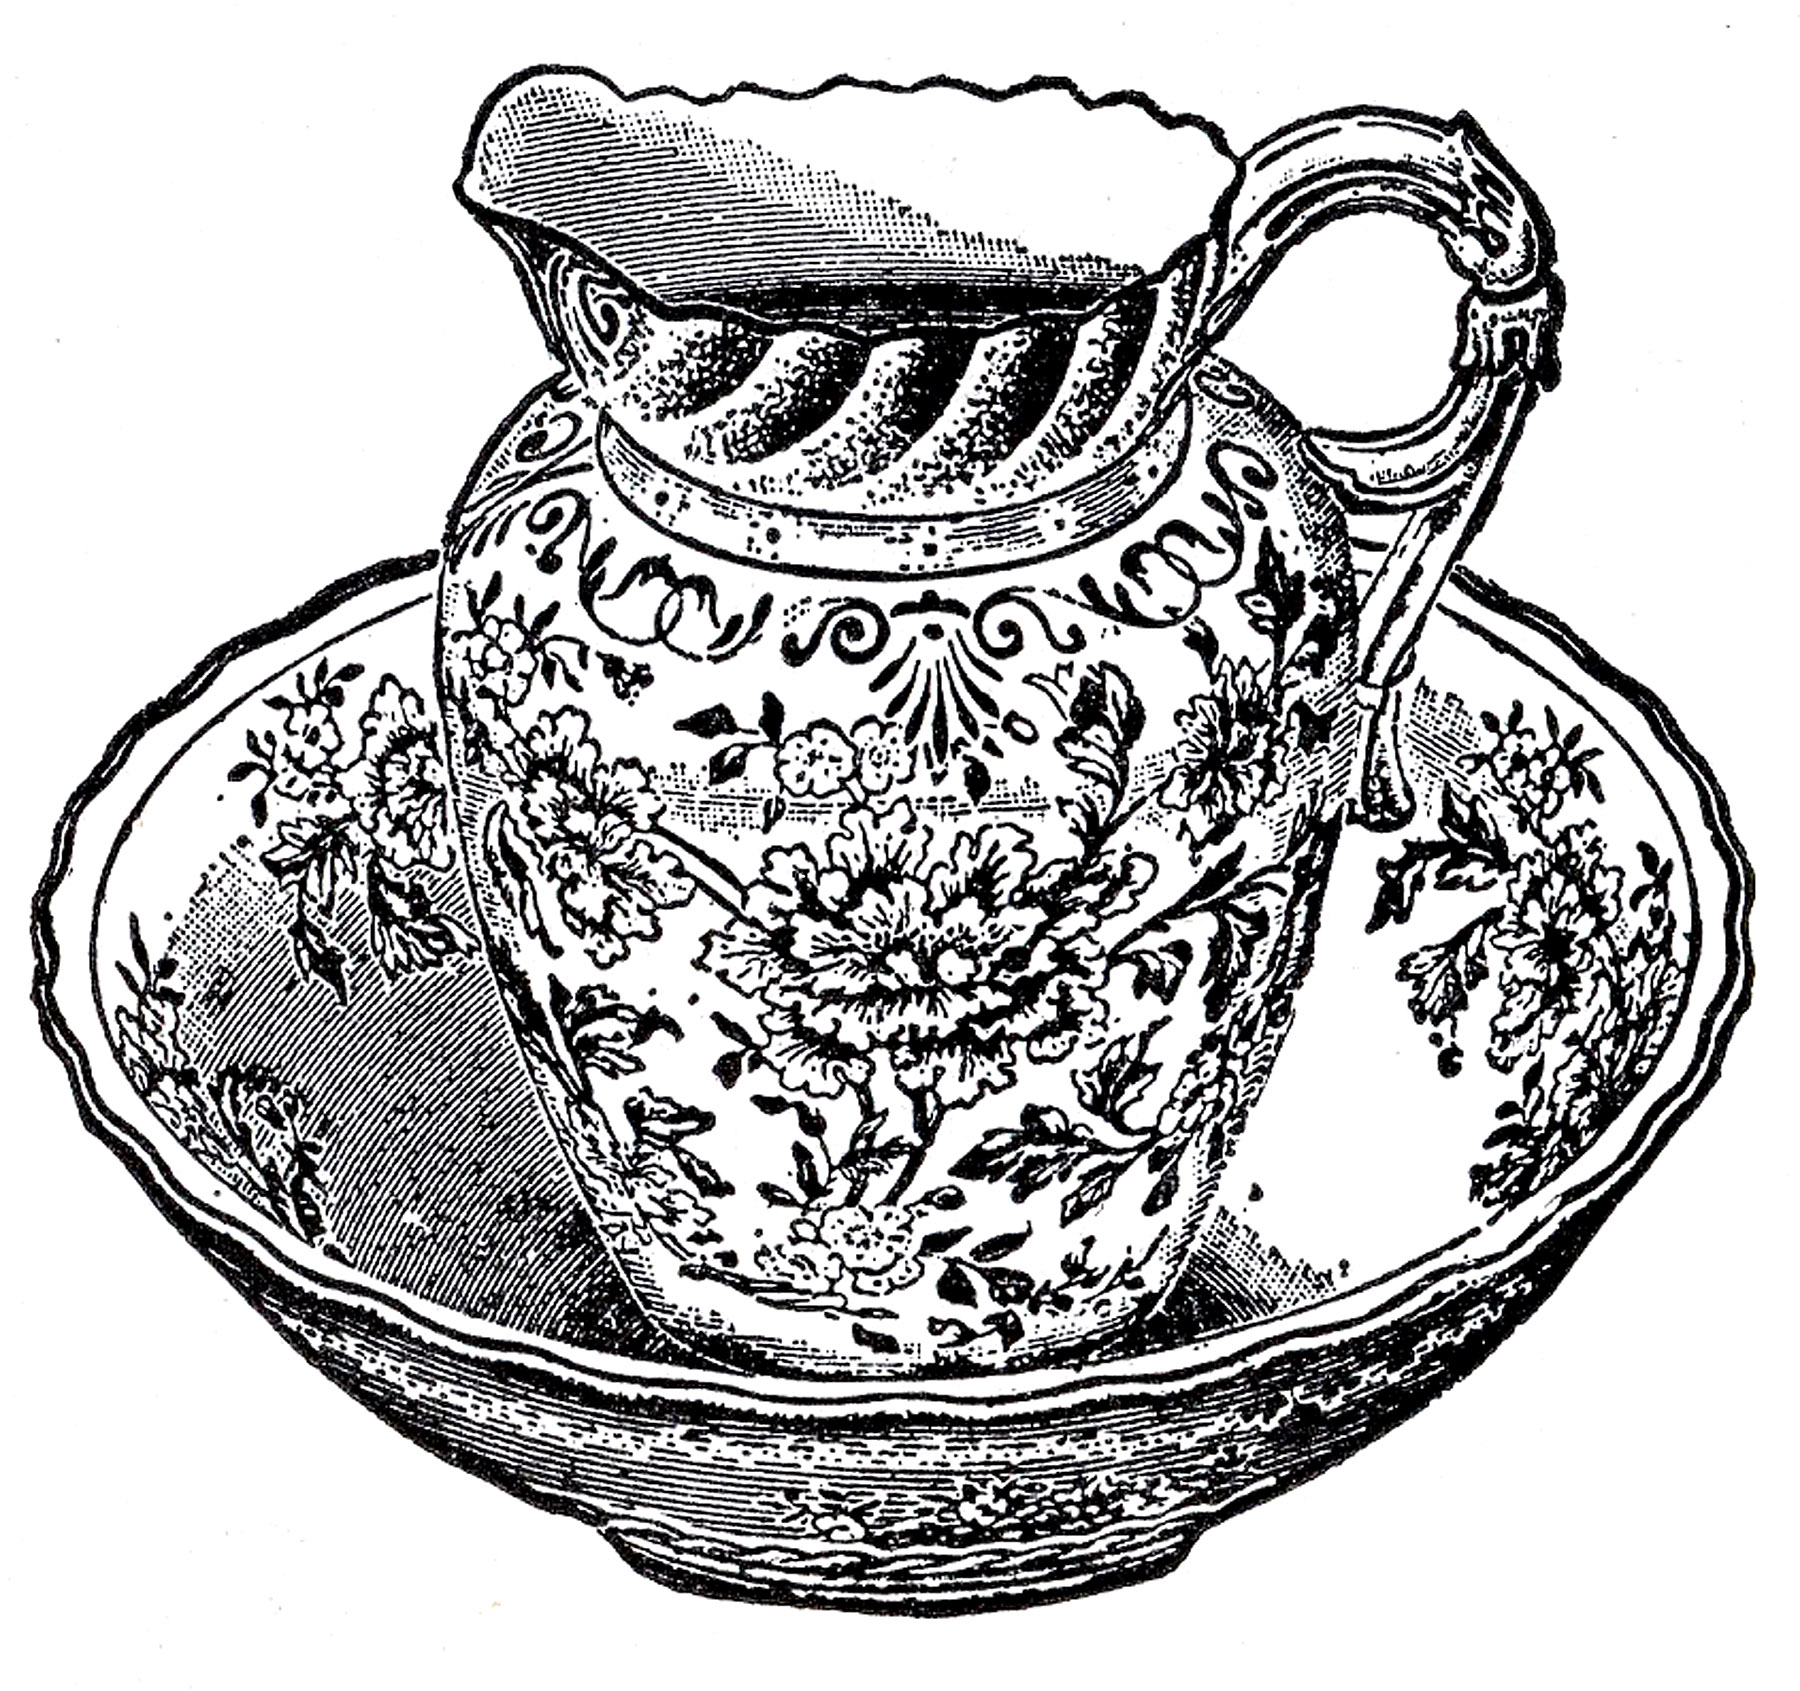 Antique Pitcher And Bowl Image